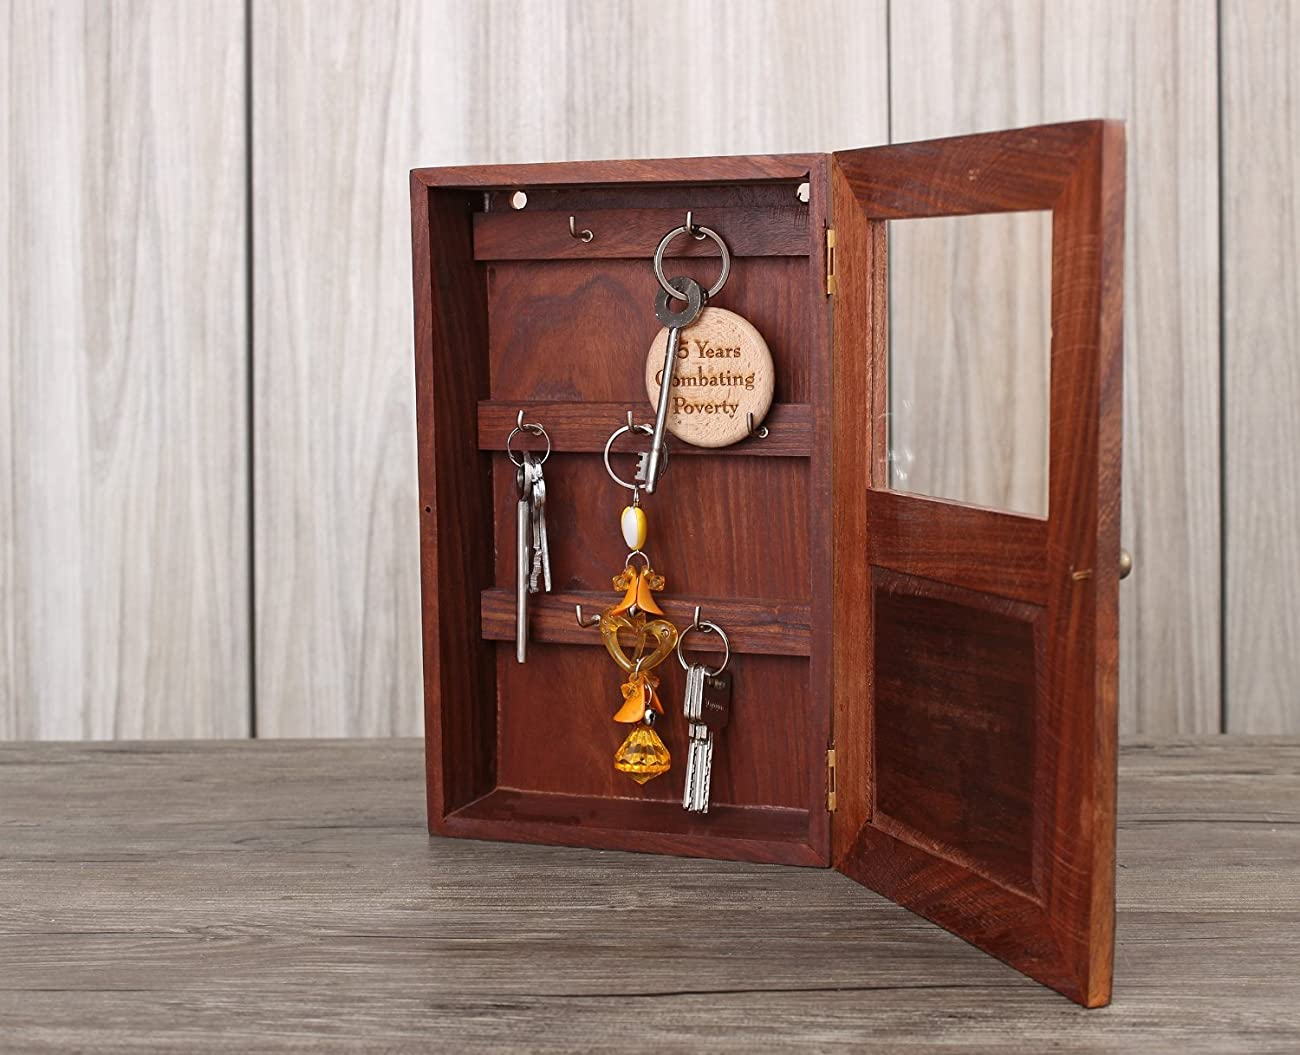 Handmade Decorative Wooden Wall Mounted Key Cabinet with Glass Panel Door & Elephant Carvings 2